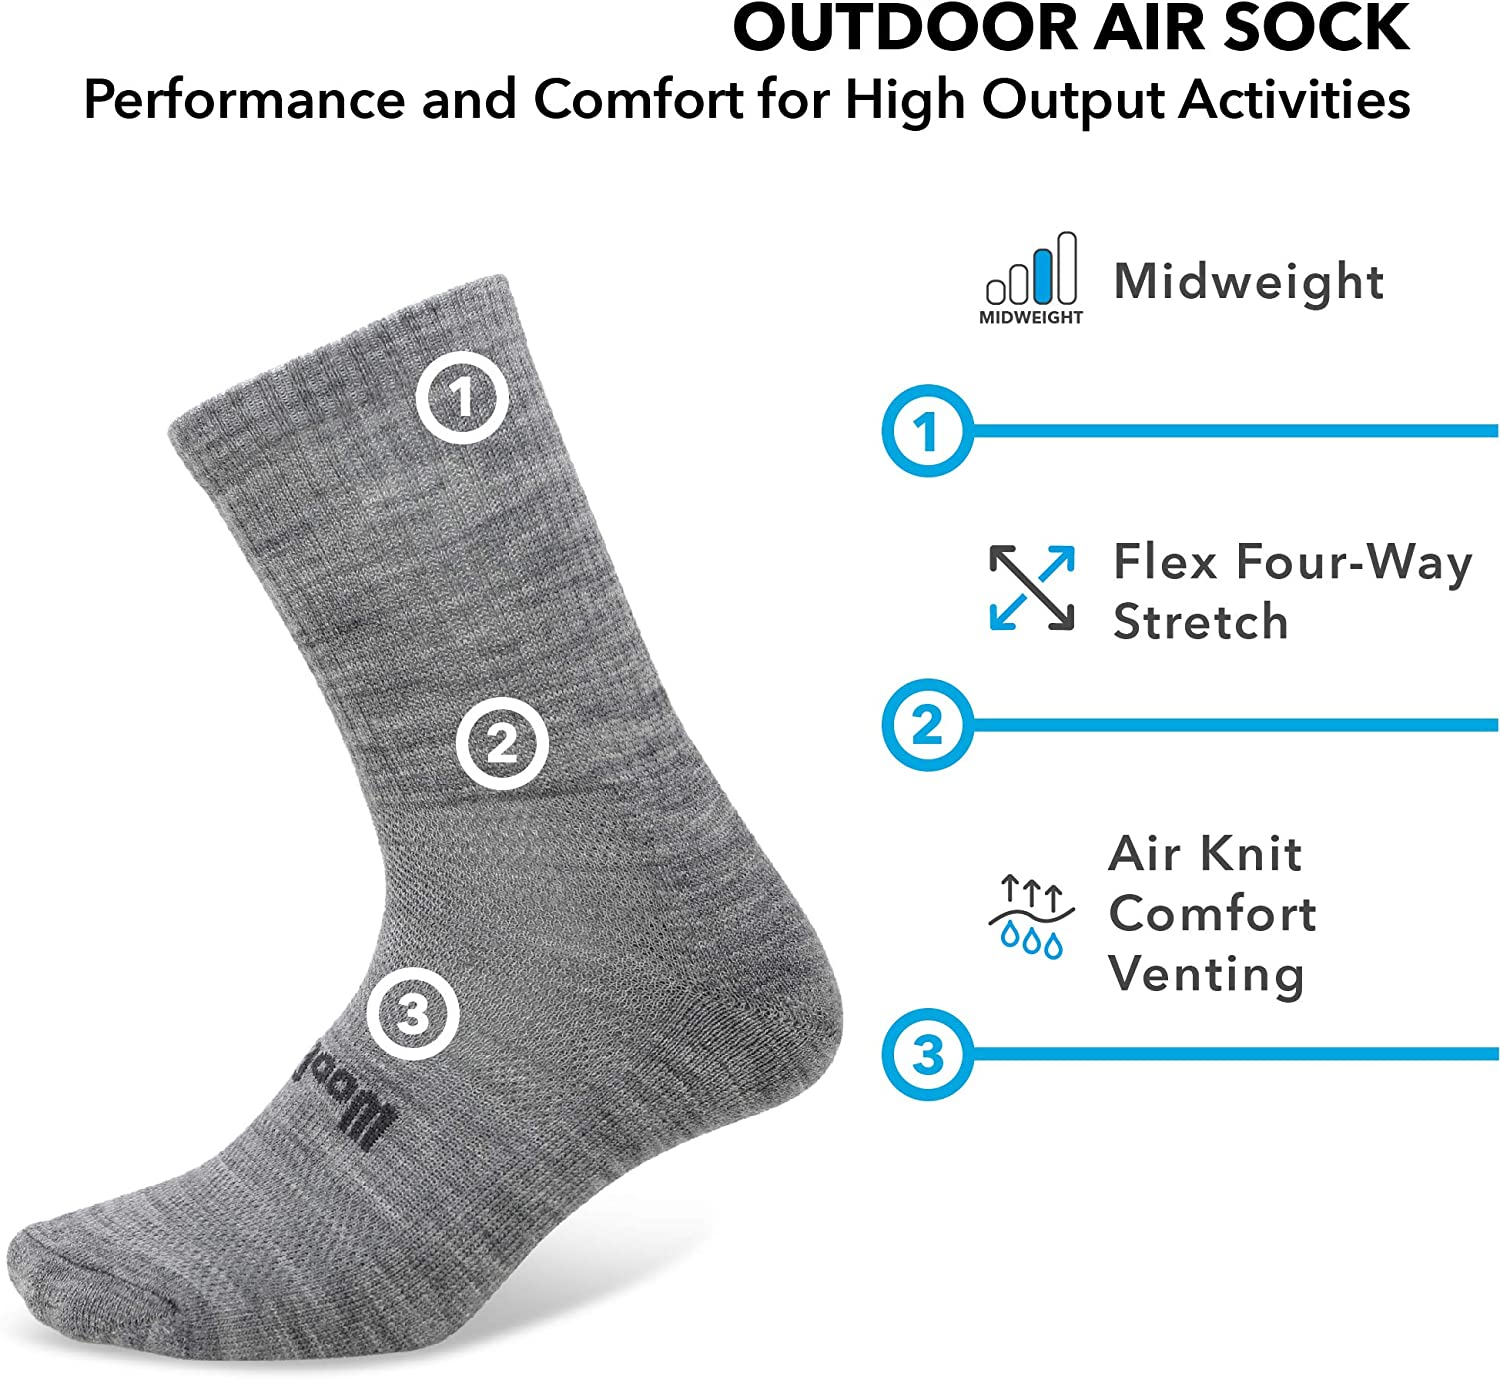 - Moisture wicking go anywhere sock anti-odor 2 Pairs Woolly Clothing Merino Wool Outdoor Air Sock -